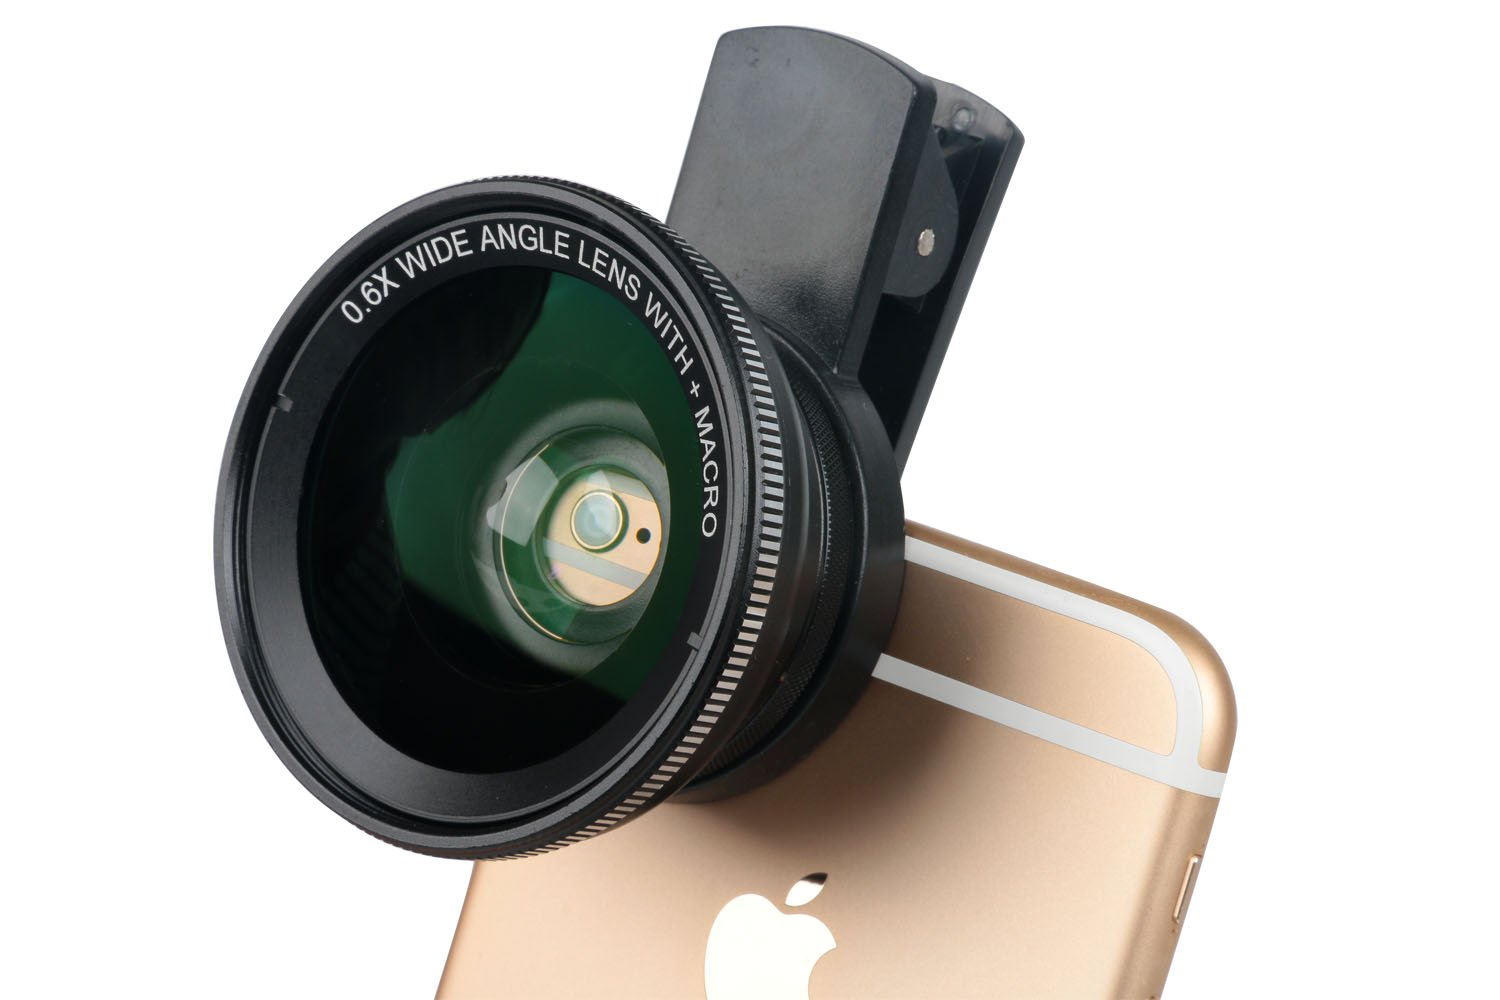 Cell Phone Camera Lens Kit,Leeko Universal Mobile Phone HD 2 in 1 Camera Lens Kit,0.6X Super Wide Angle Lens + 15X Macro Lens,Clip-On Cell Phone Lens for iPhone,Samsung, Android Smartphones (Black)